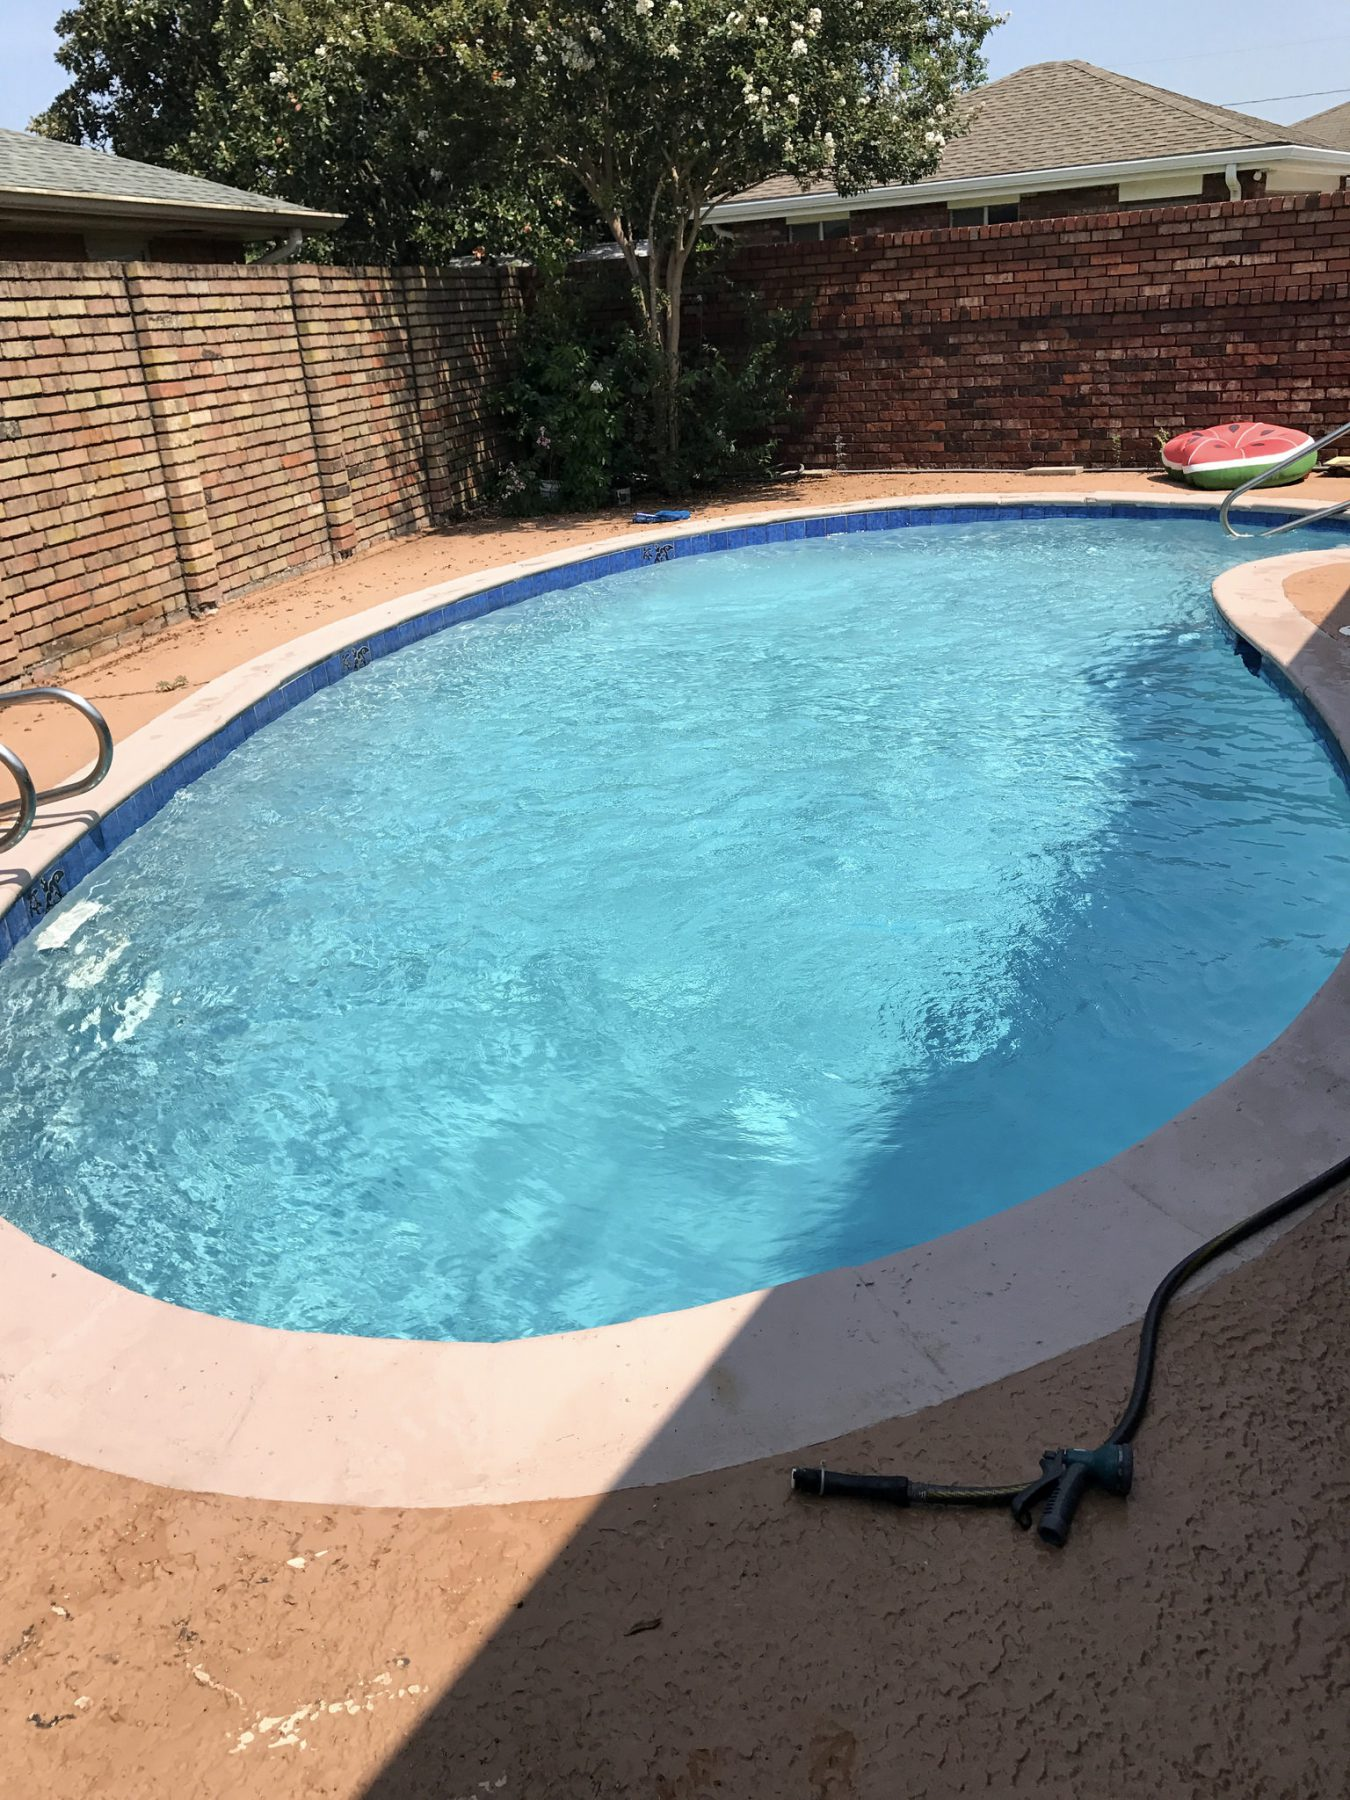 Pool plaster project - New Orleans Pool Repair and maintenance, in the New Orleans and Metairie area